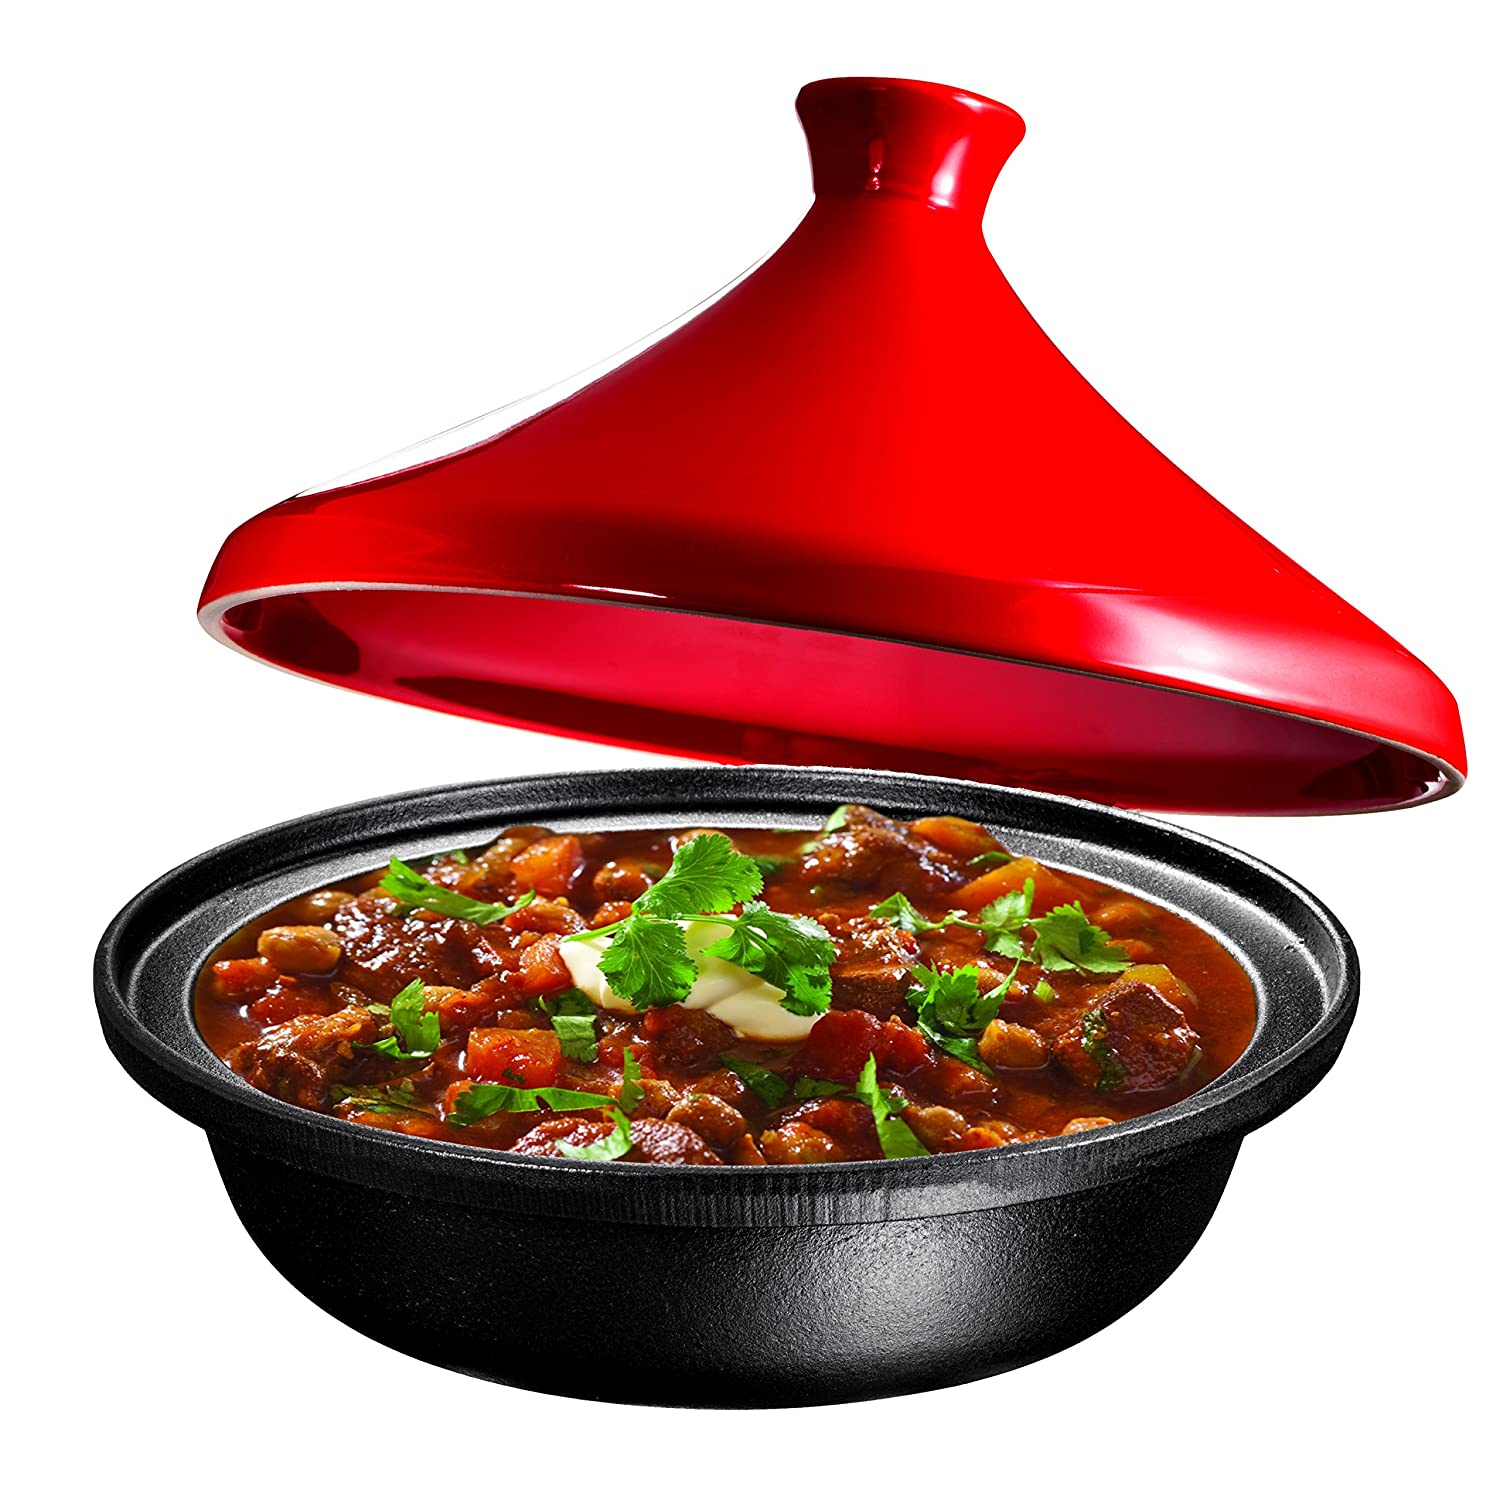 Cast Iron Moroccan Tagine Pot, Enameled Fire Red, 4 Quart, by Bruntmor BR3803